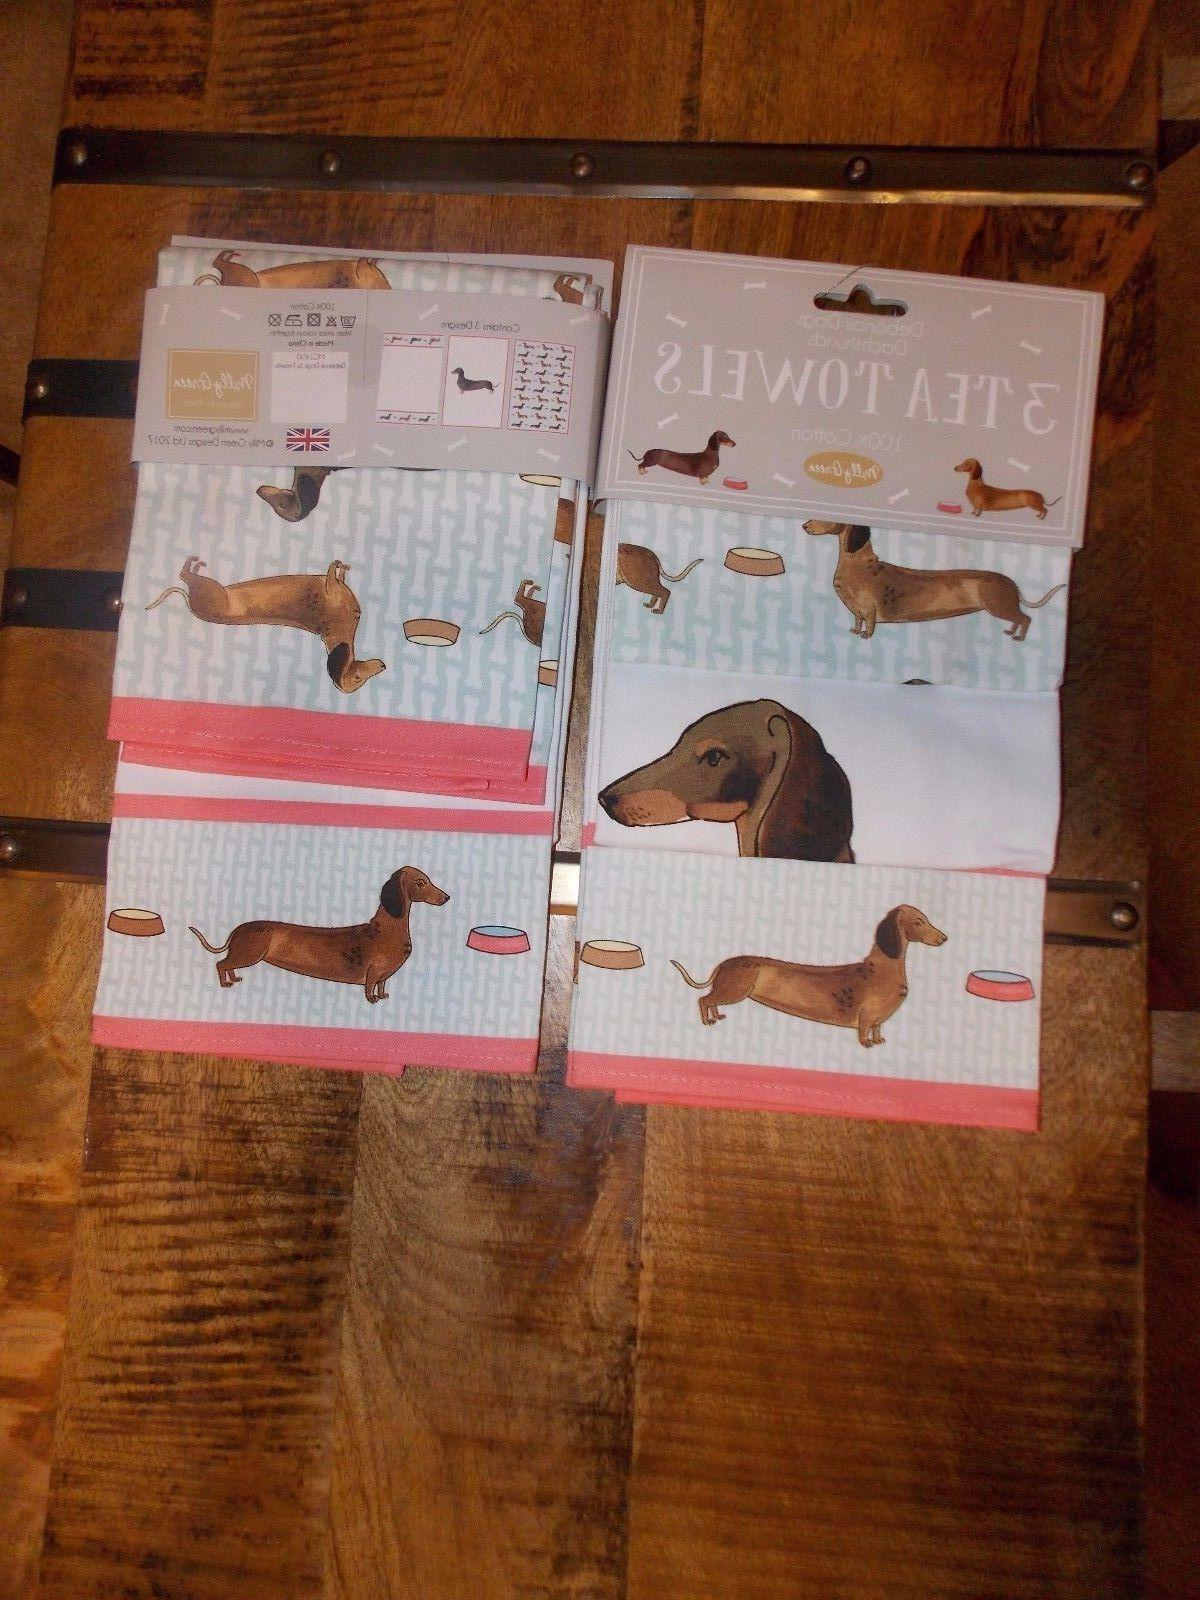 Dachshund Wiener Dog 3 Tea Kitchen Towels 3 DESIGNS - NEW Mi